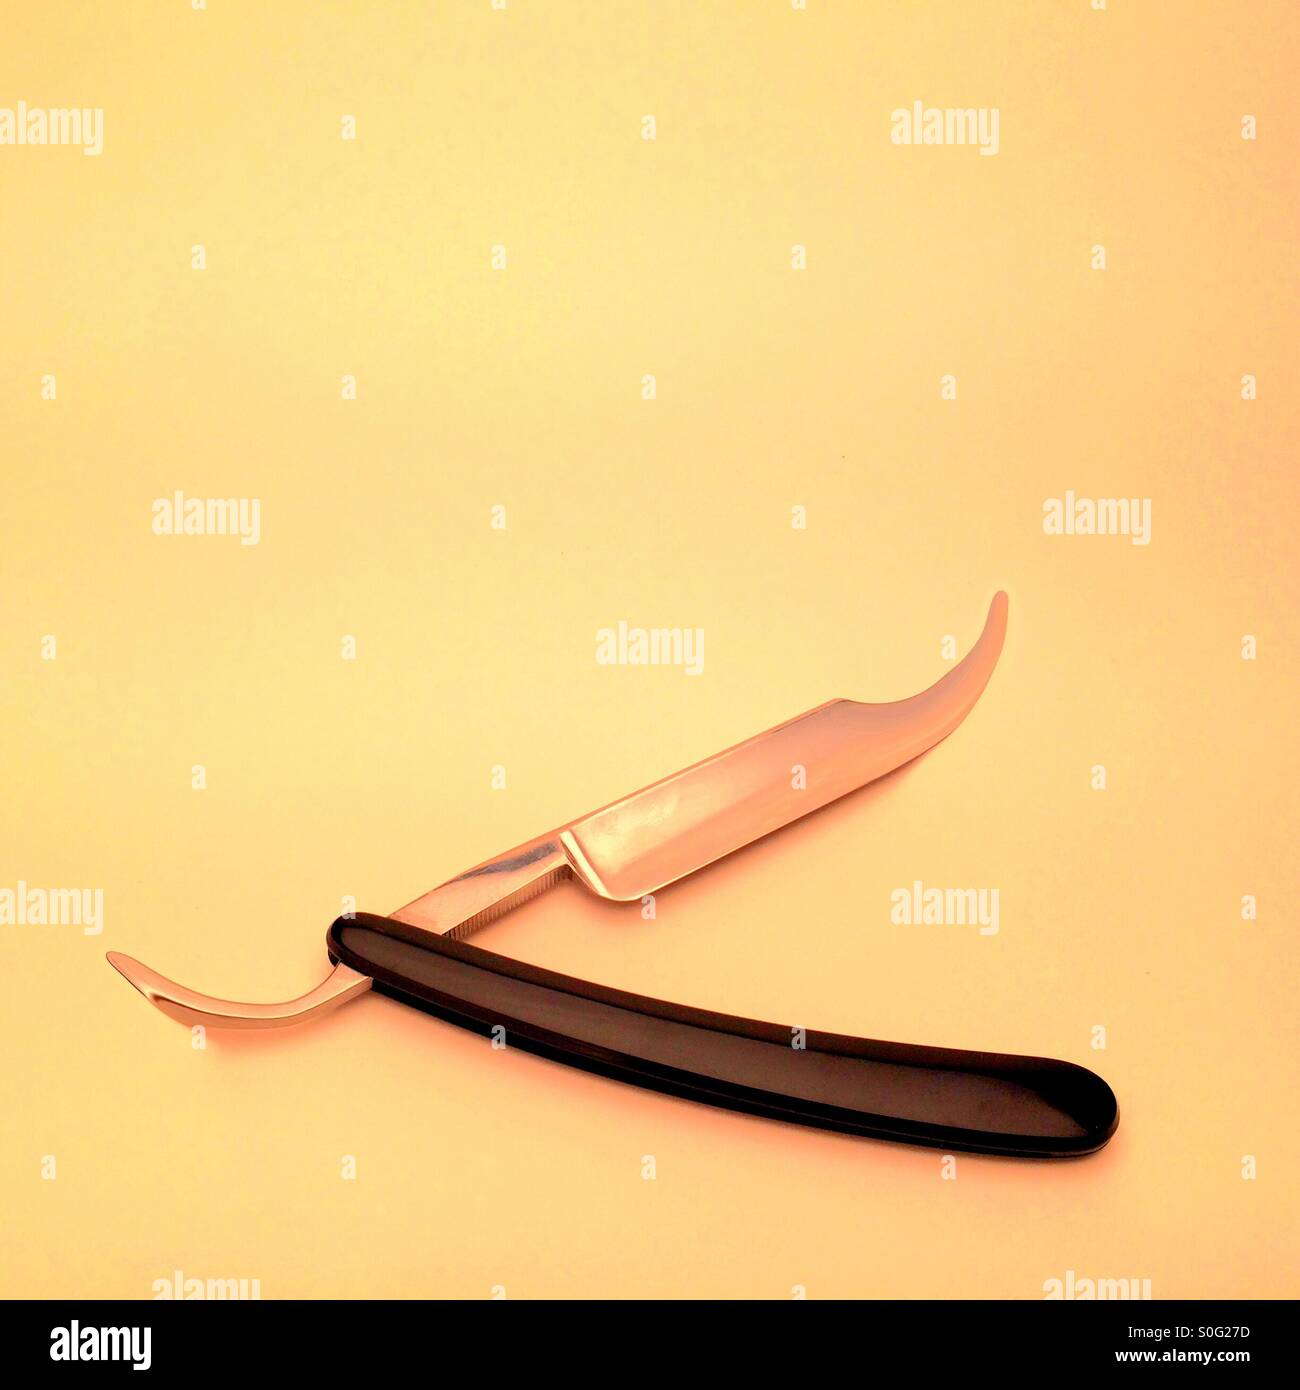 Surreal cut throat razor knife - Stock Image